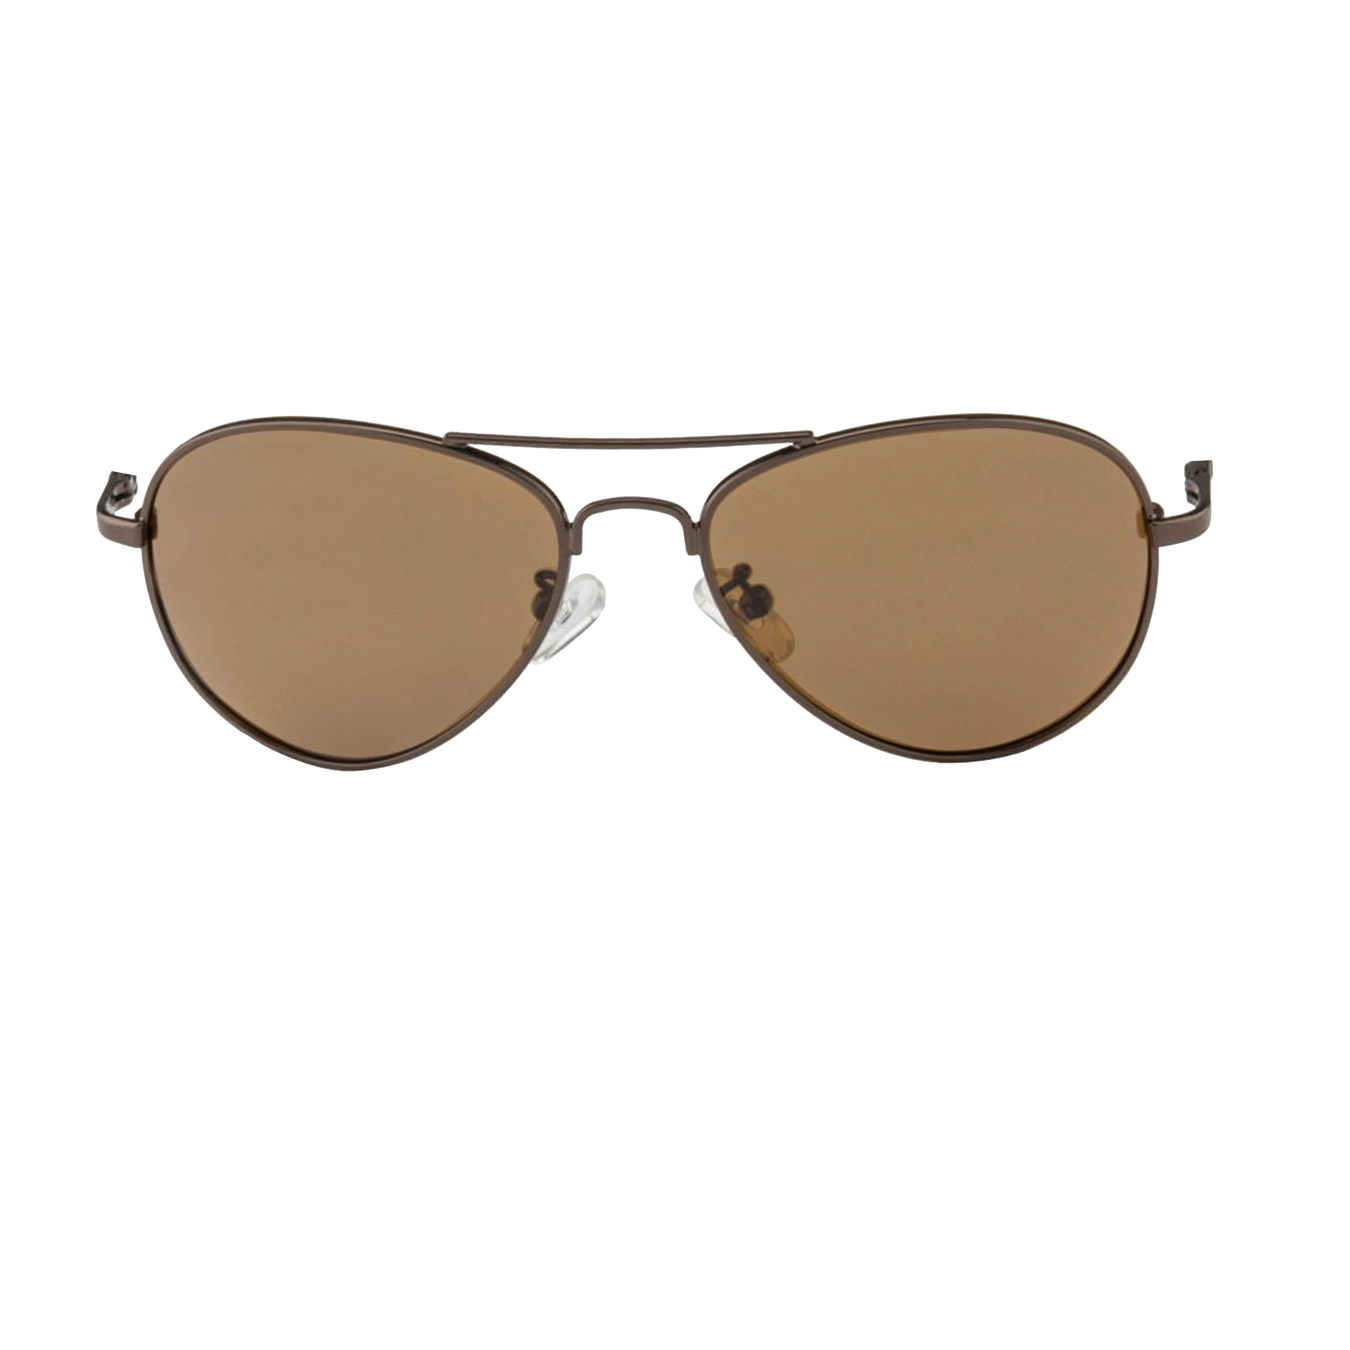 clip free library Sunglasses picture transparentpng . Aviator clipart